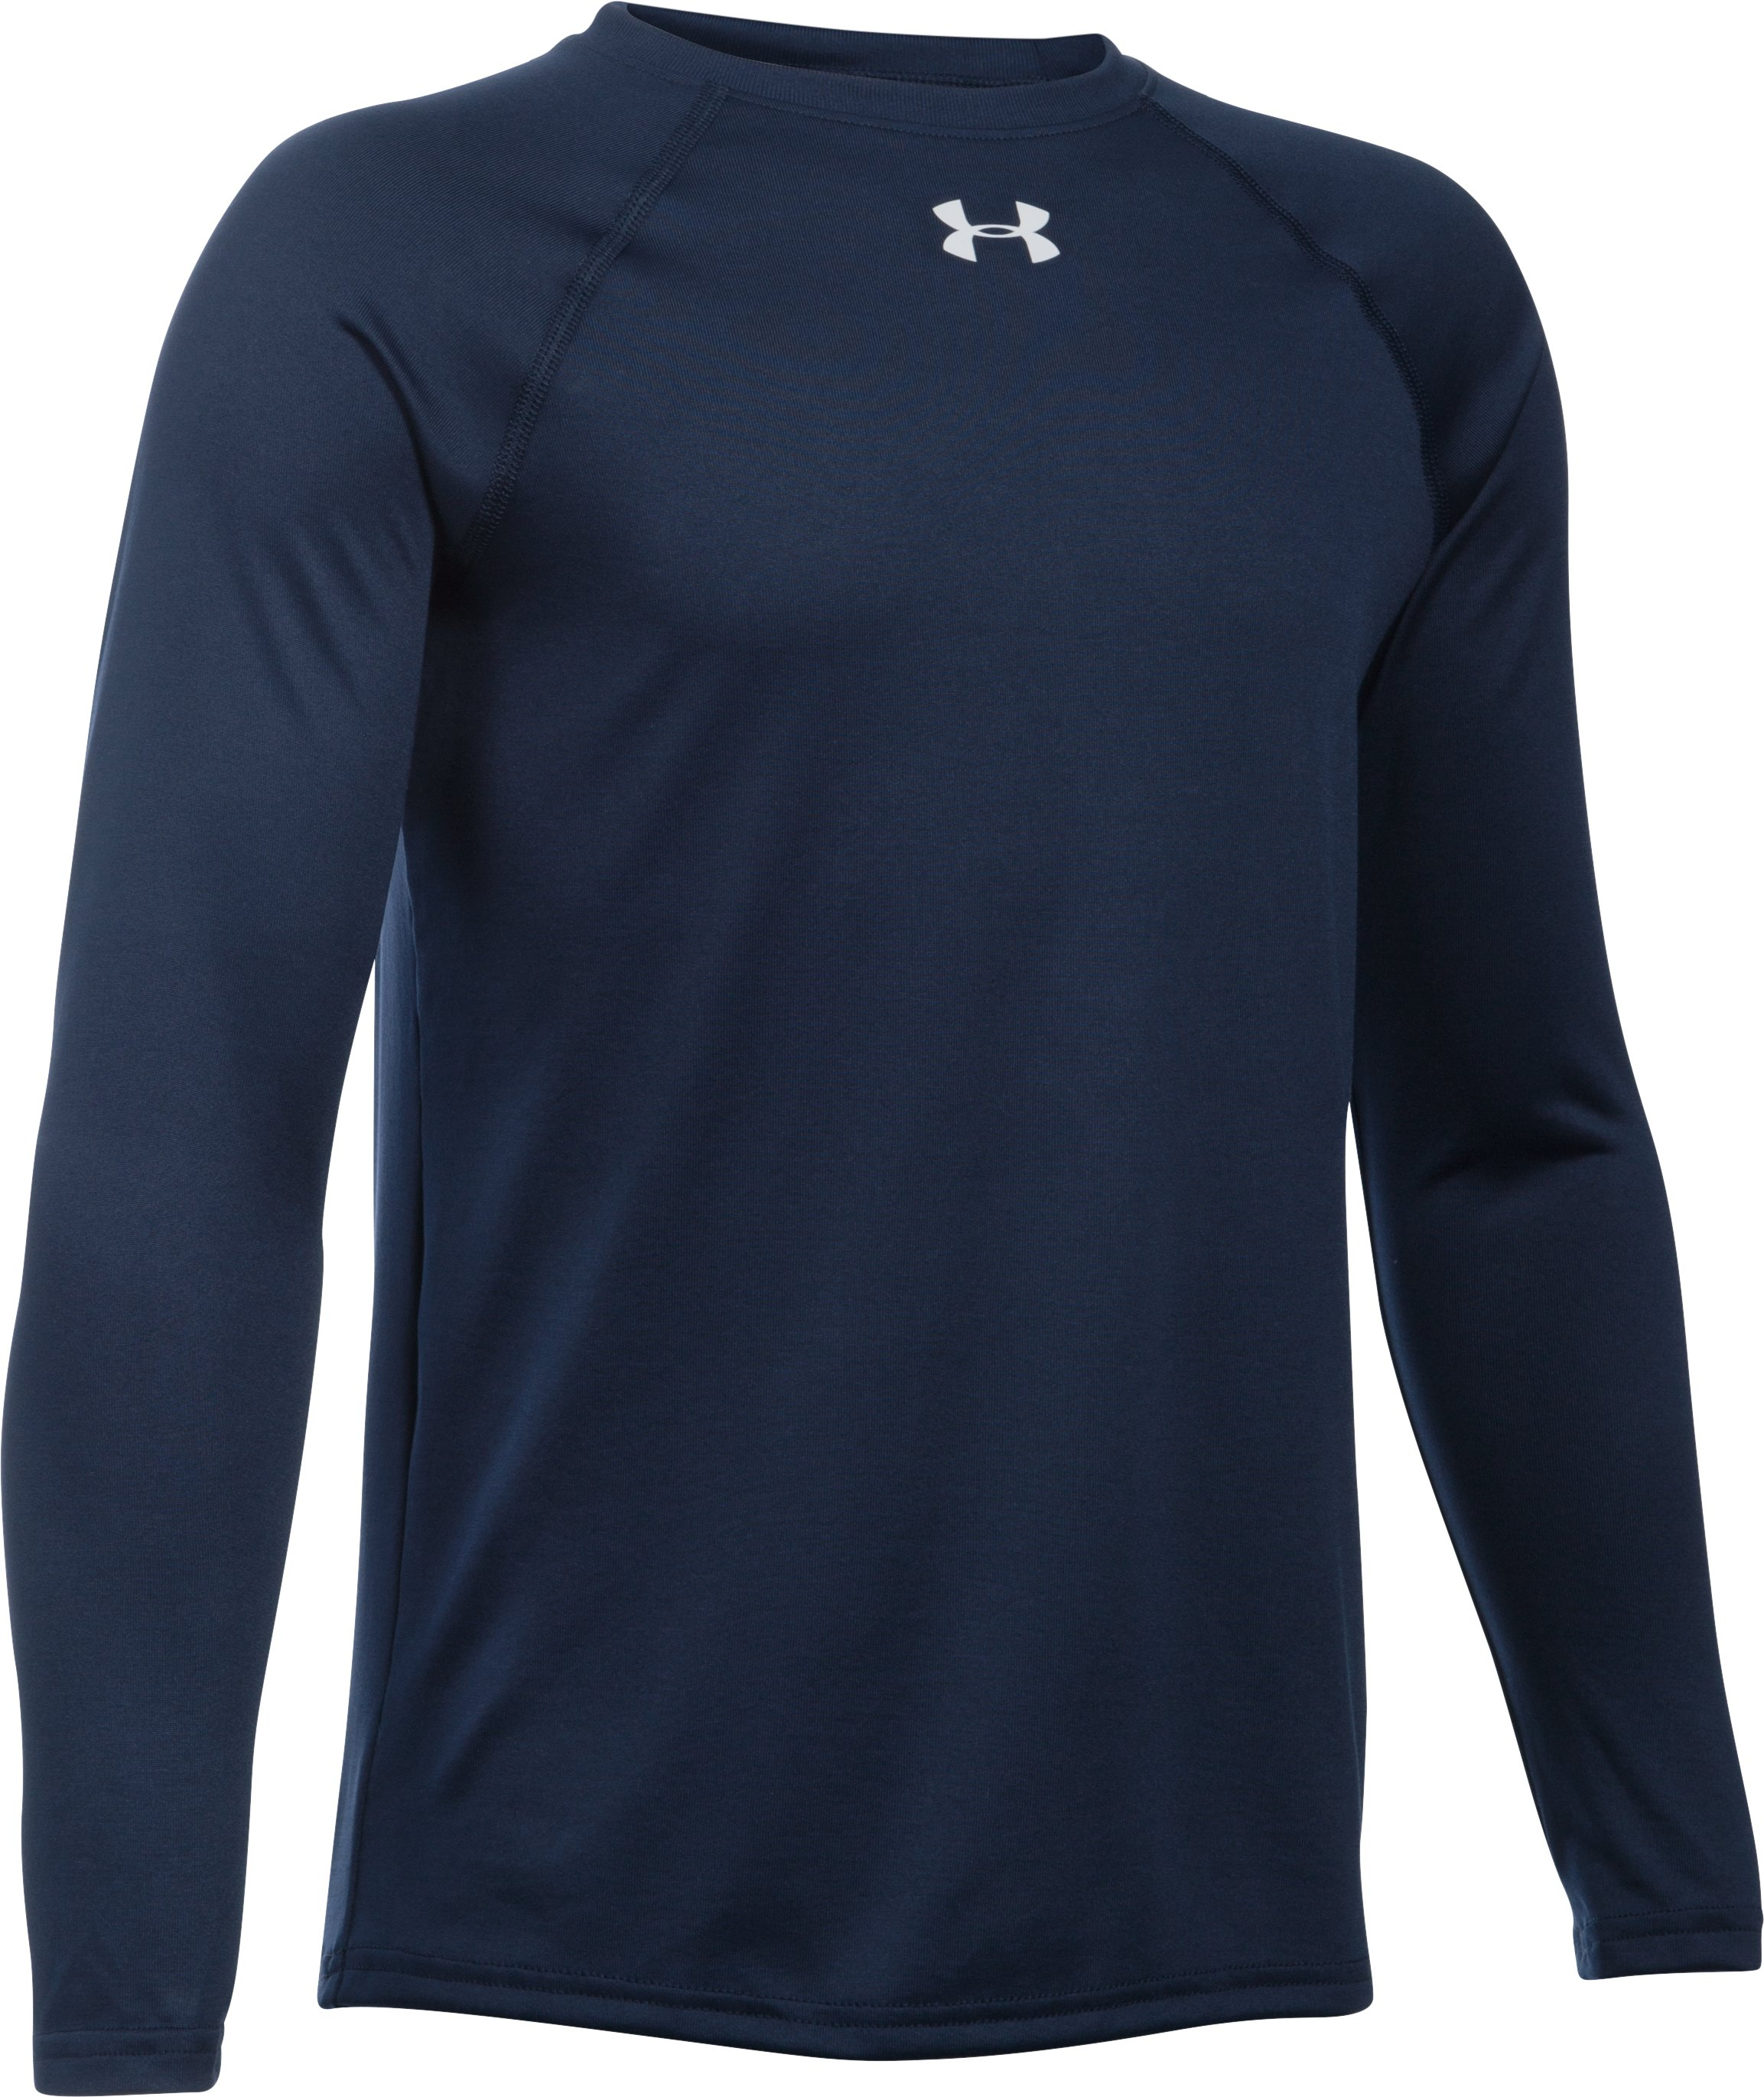 Boys' UA Locker T-Shirt, Midnight Navy, zoomed image